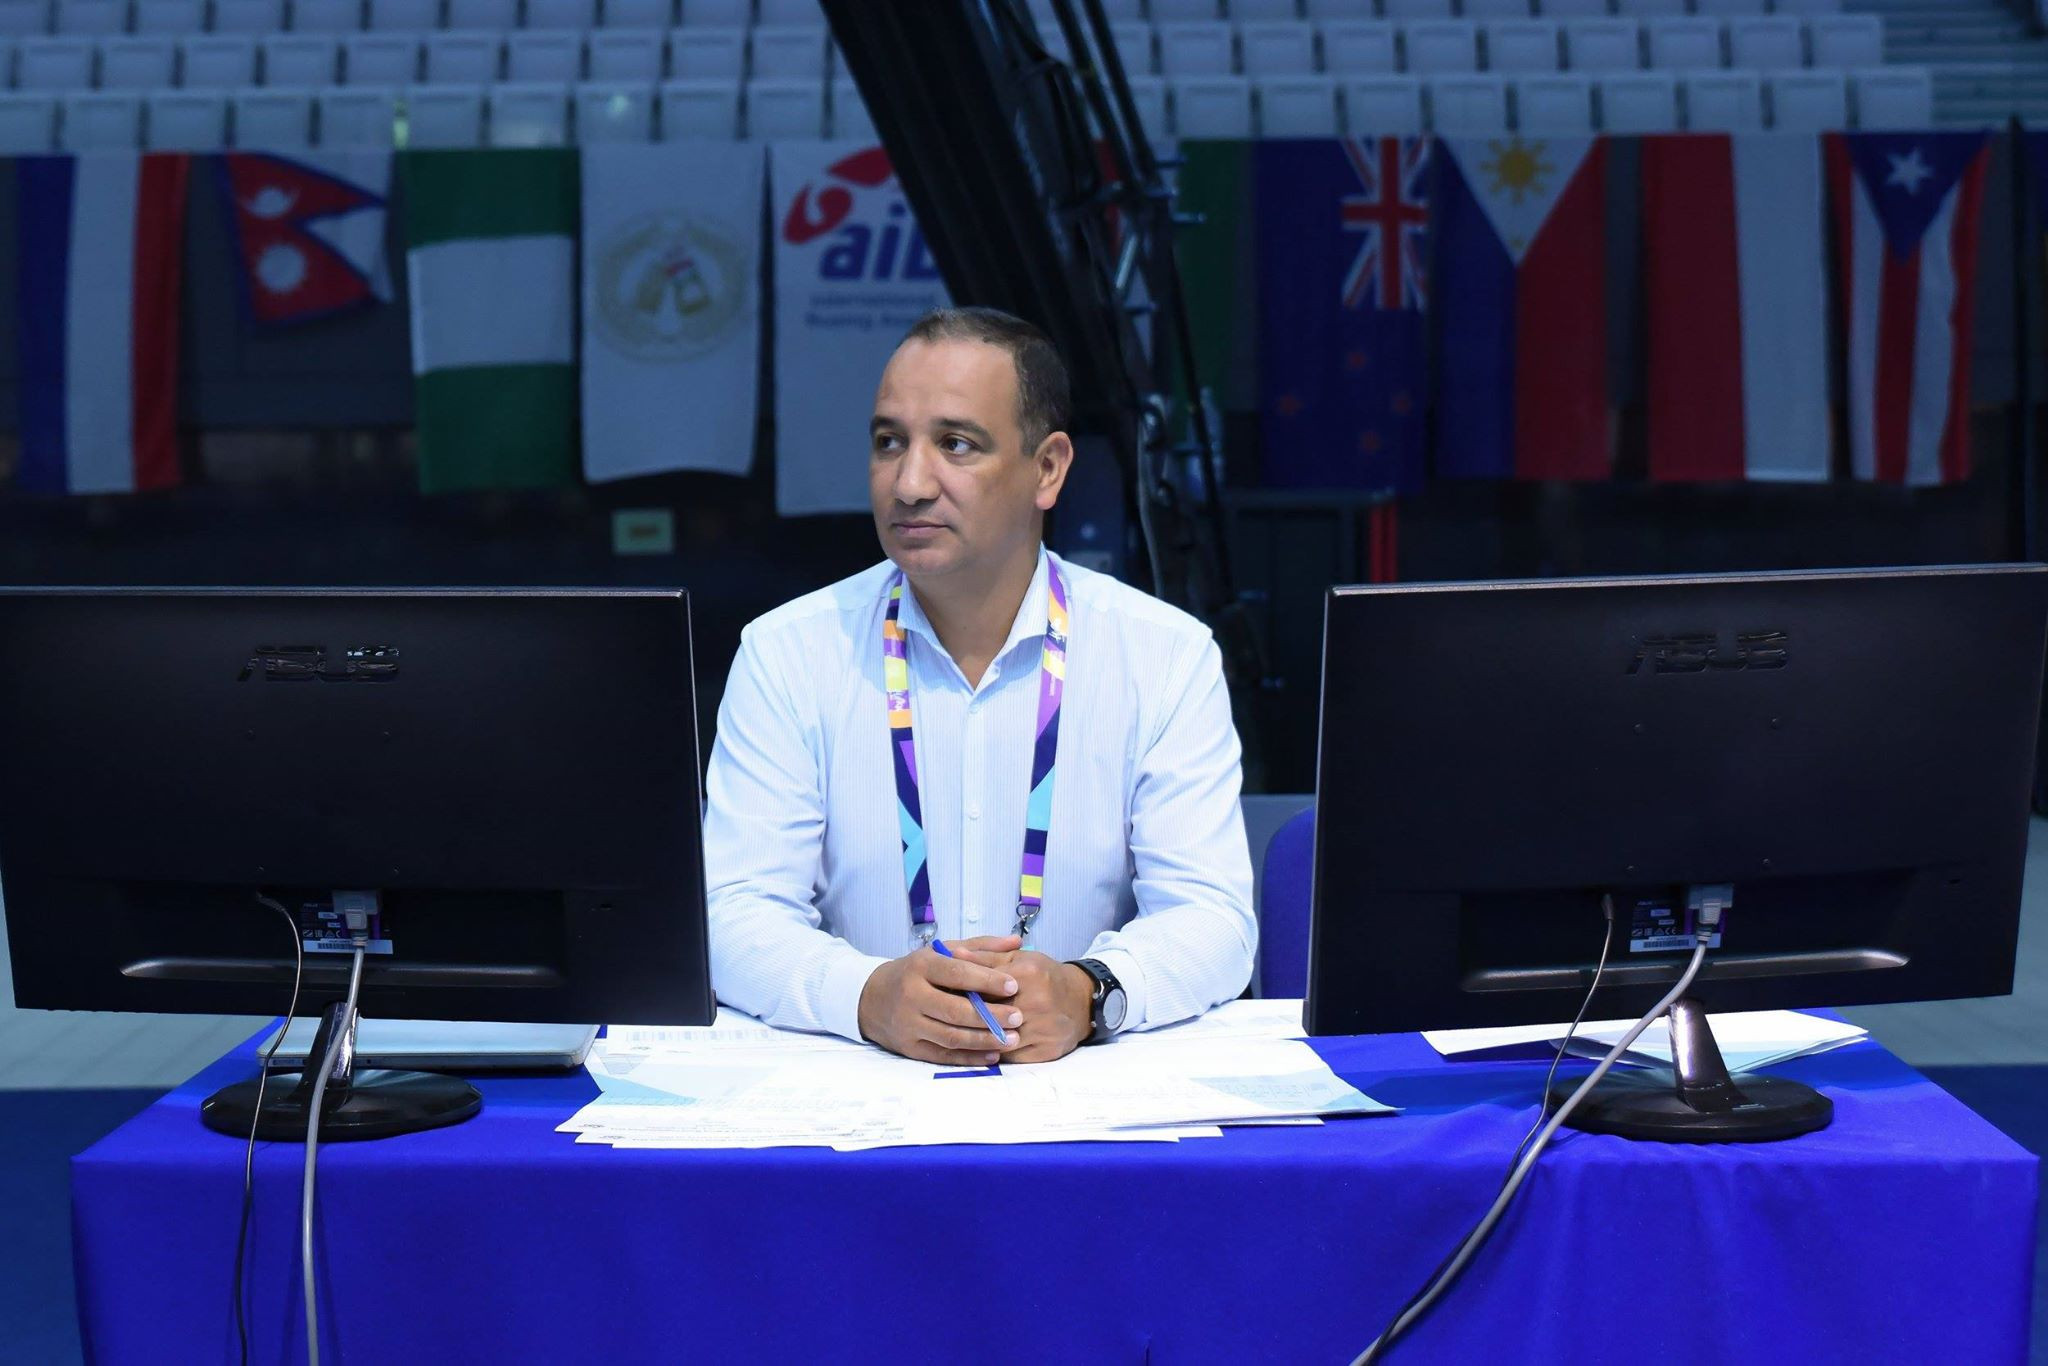 Exclusive: Moustahsane to remain AIBA Interim President after withdrawing resignation